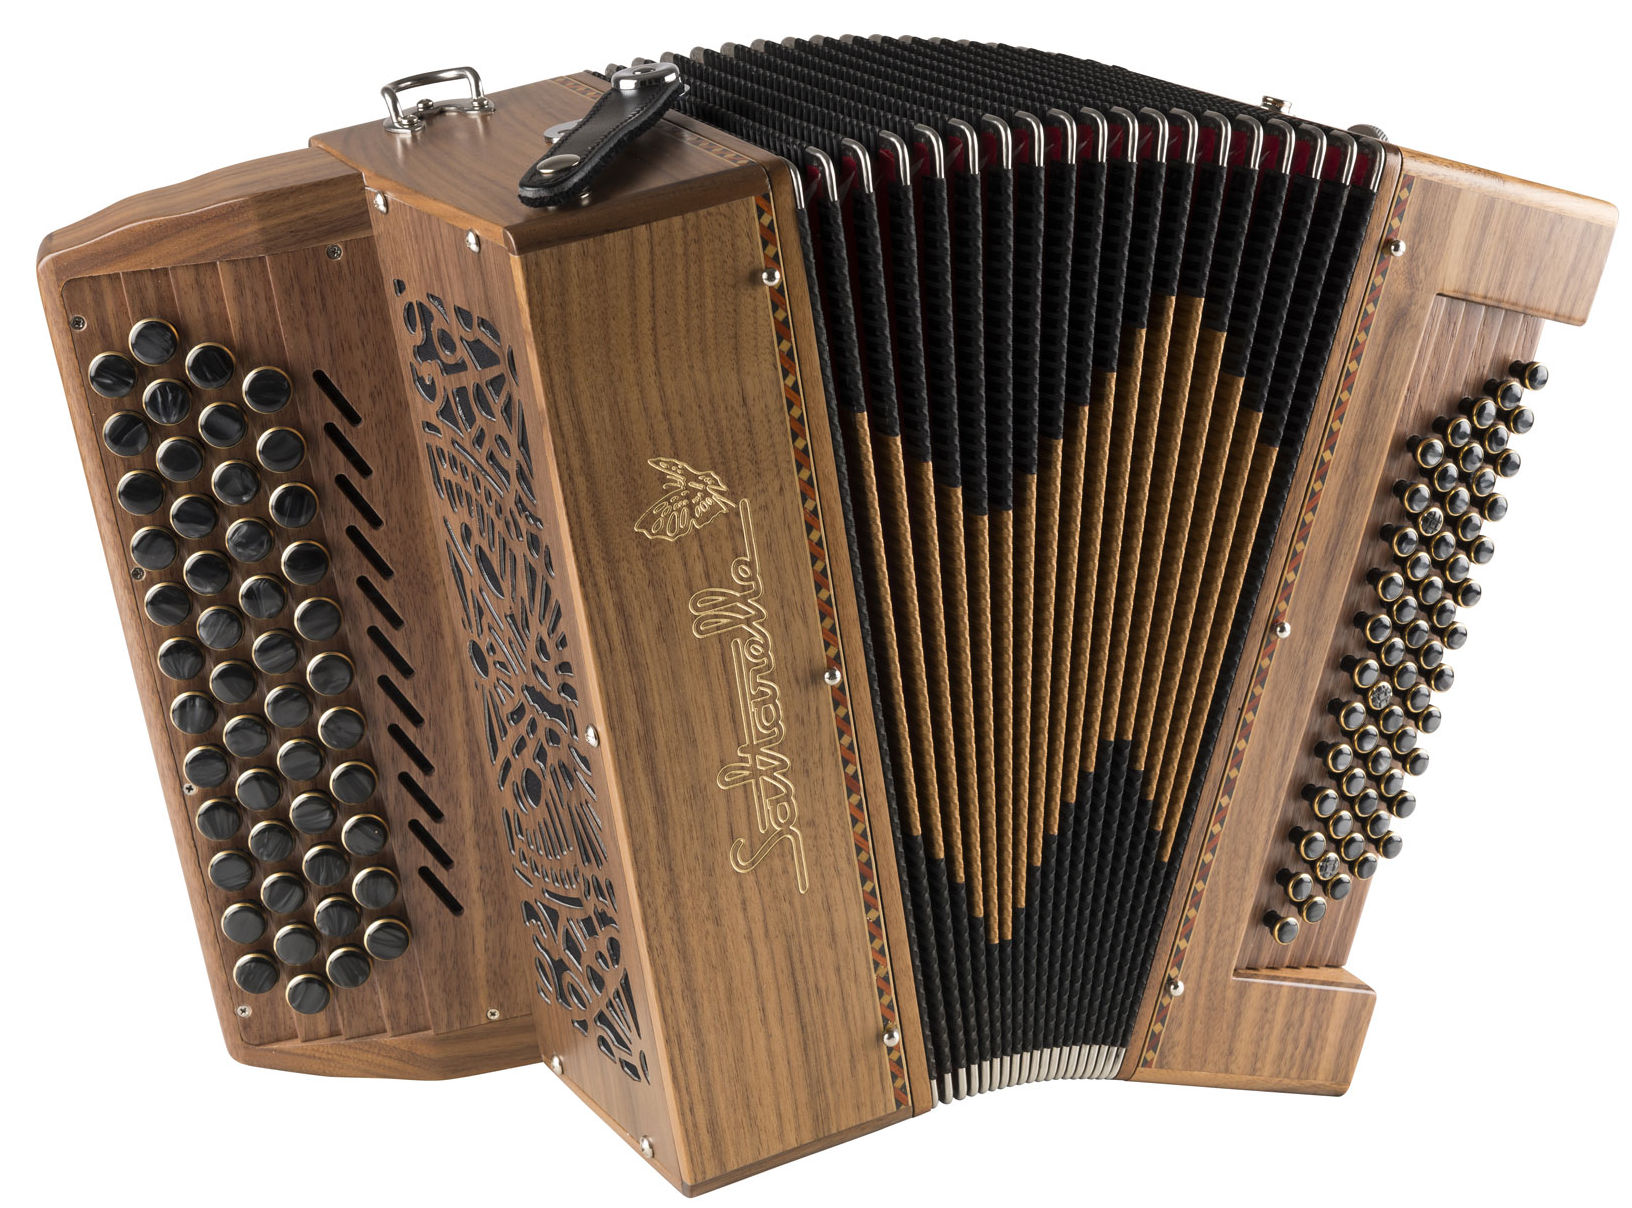 Saltarelle Chaville chromatic accordion